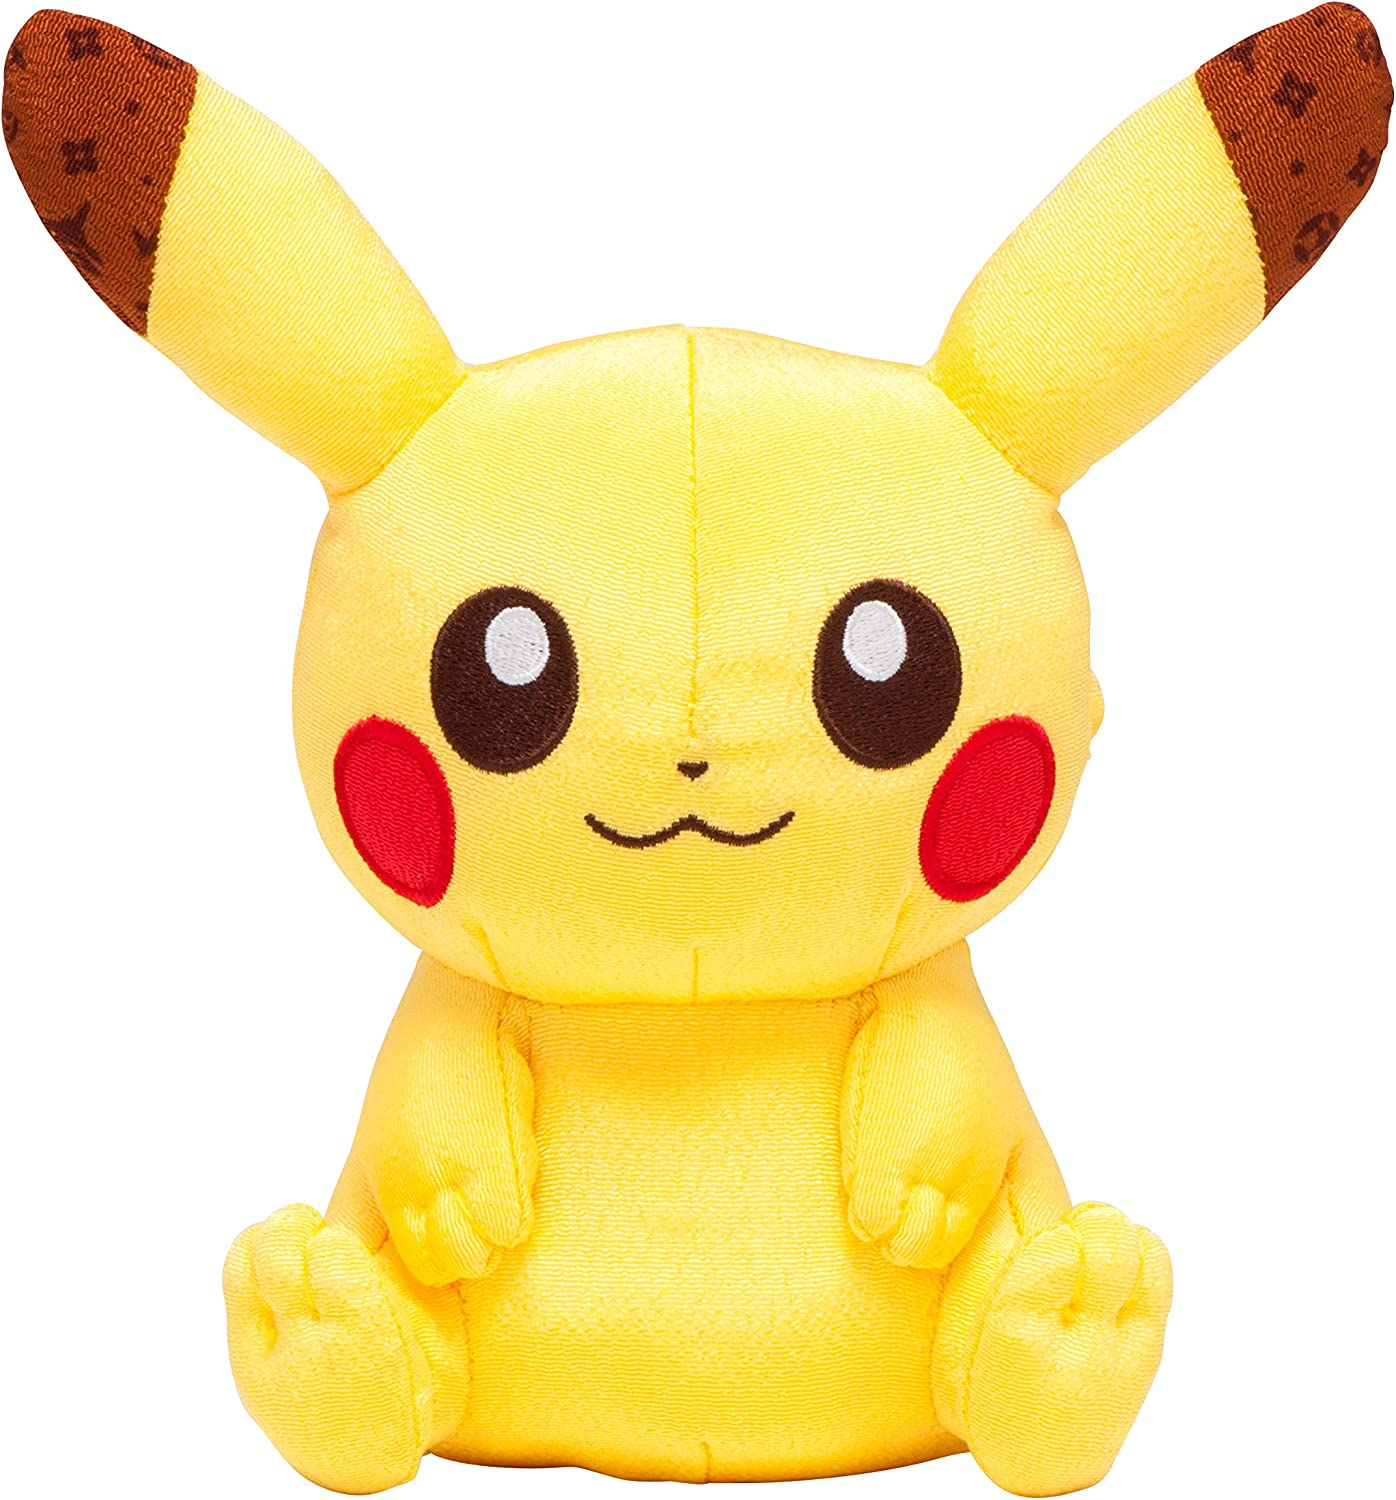 Pokemon Center Original crepe-style stuffed Pikachu